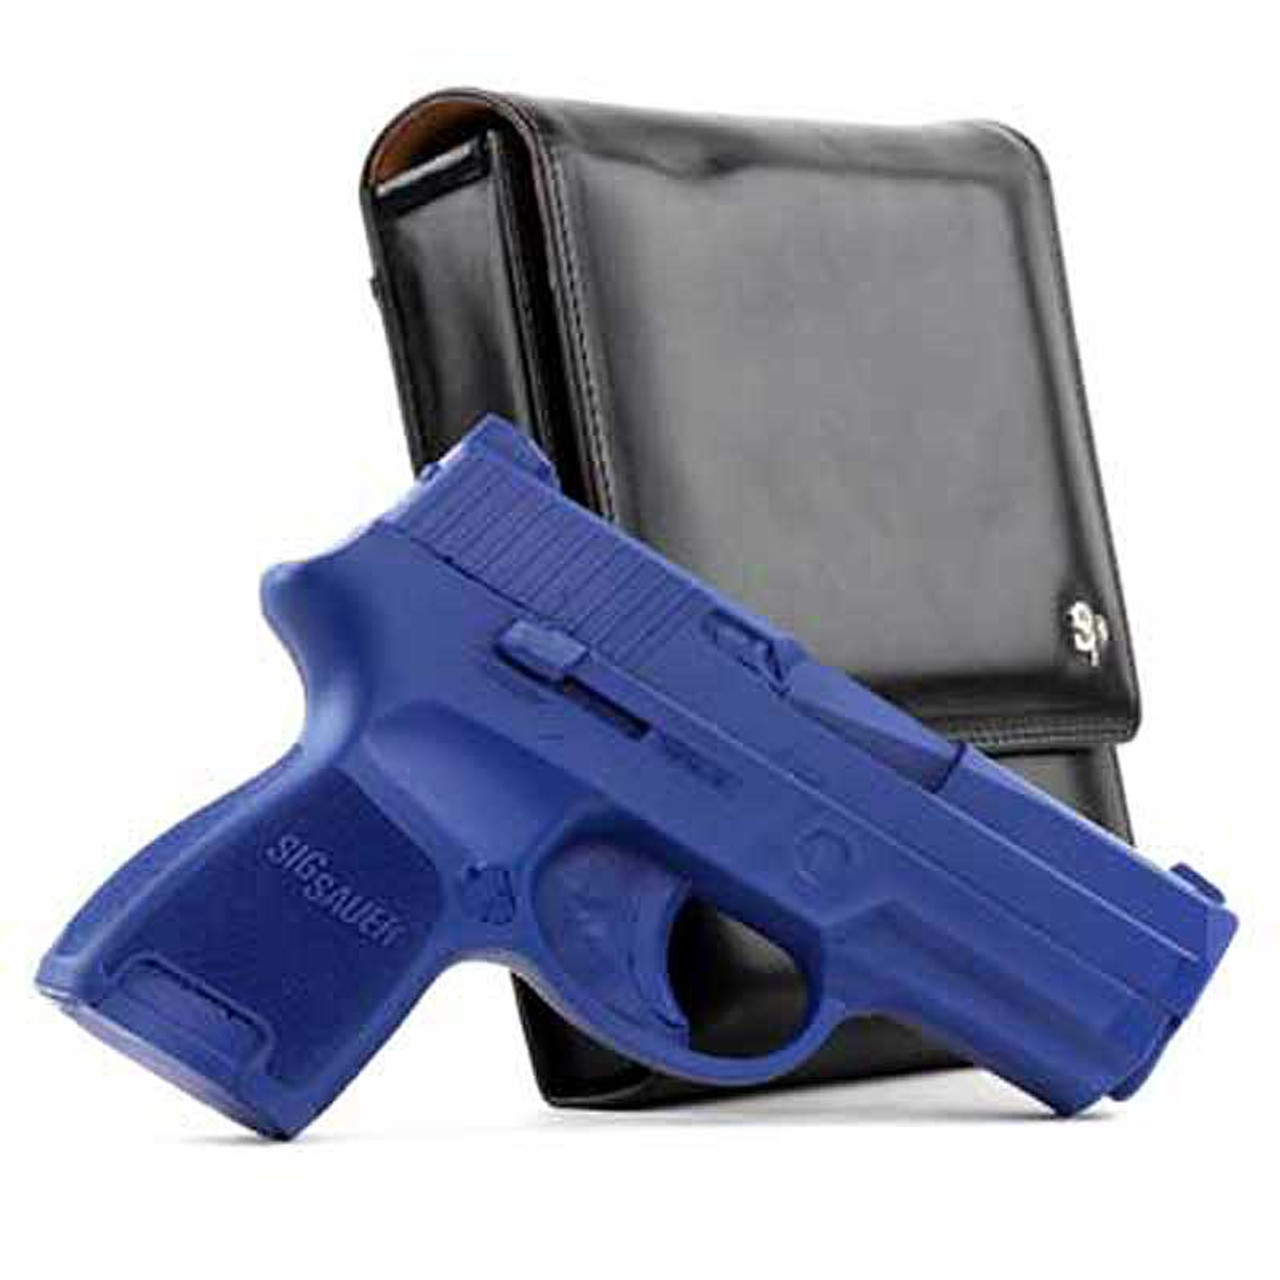 Sig Sauer P250 Sub Compact Sneaky Pete Holster (Belt Clip)